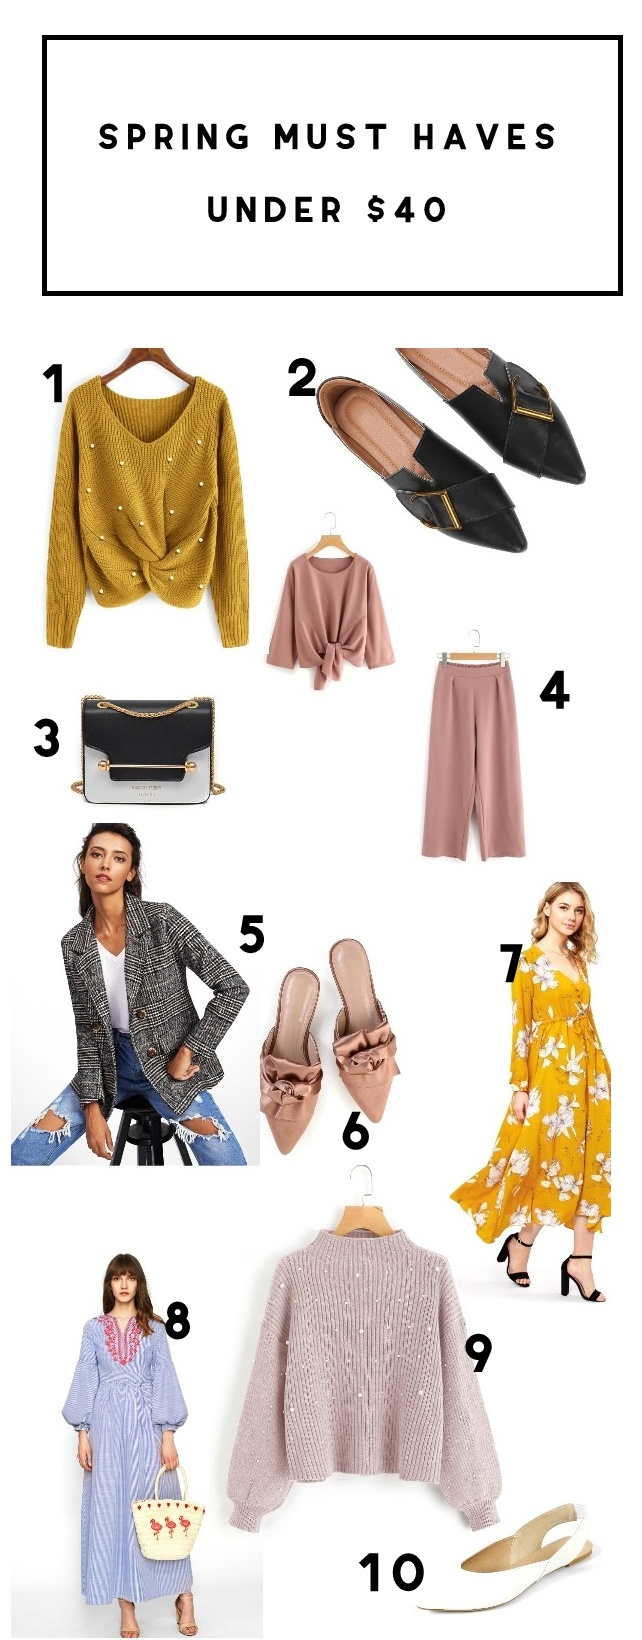 shein must haves.jpg